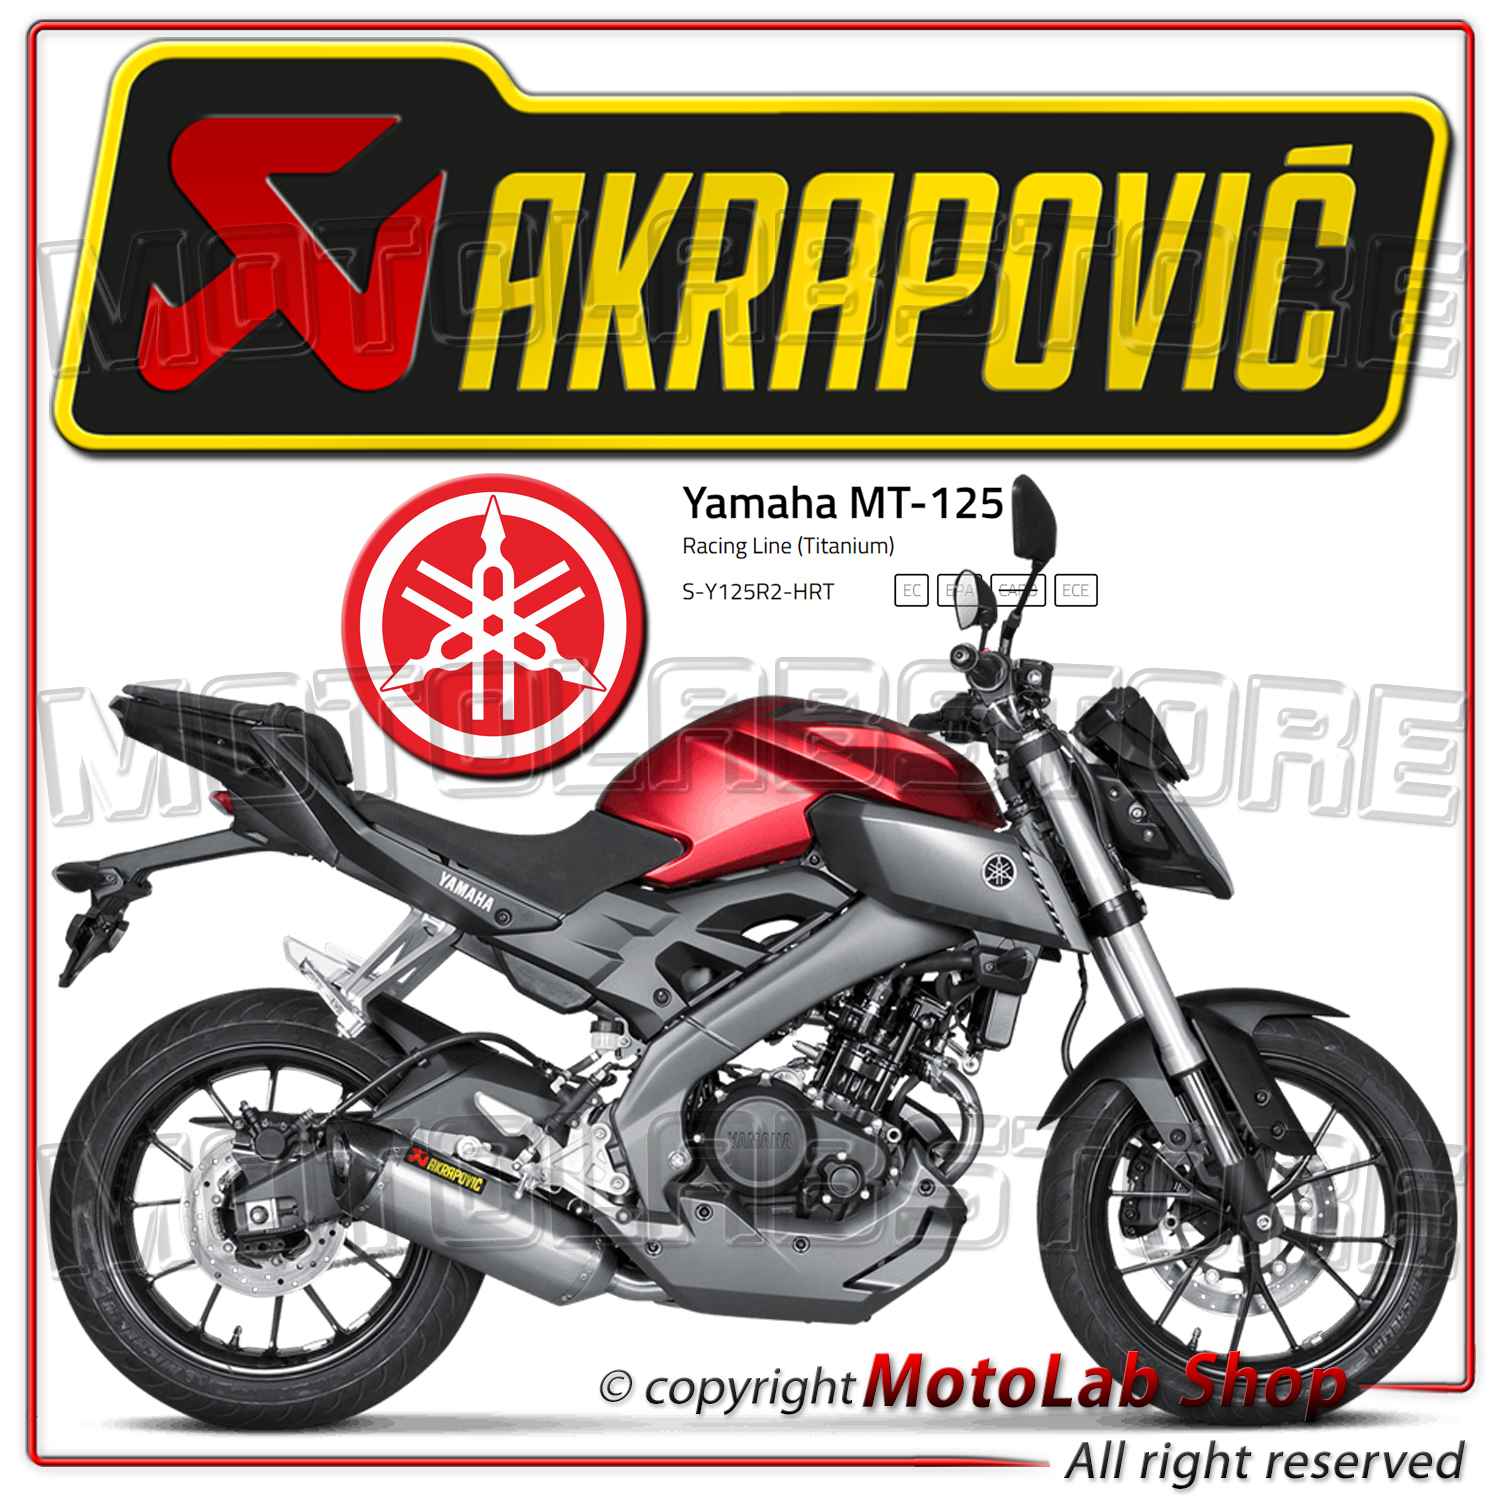 echappement complete racing approuve akrapovic titane yamaha mt 125 2014 ebay. Black Bedroom Furniture Sets. Home Design Ideas